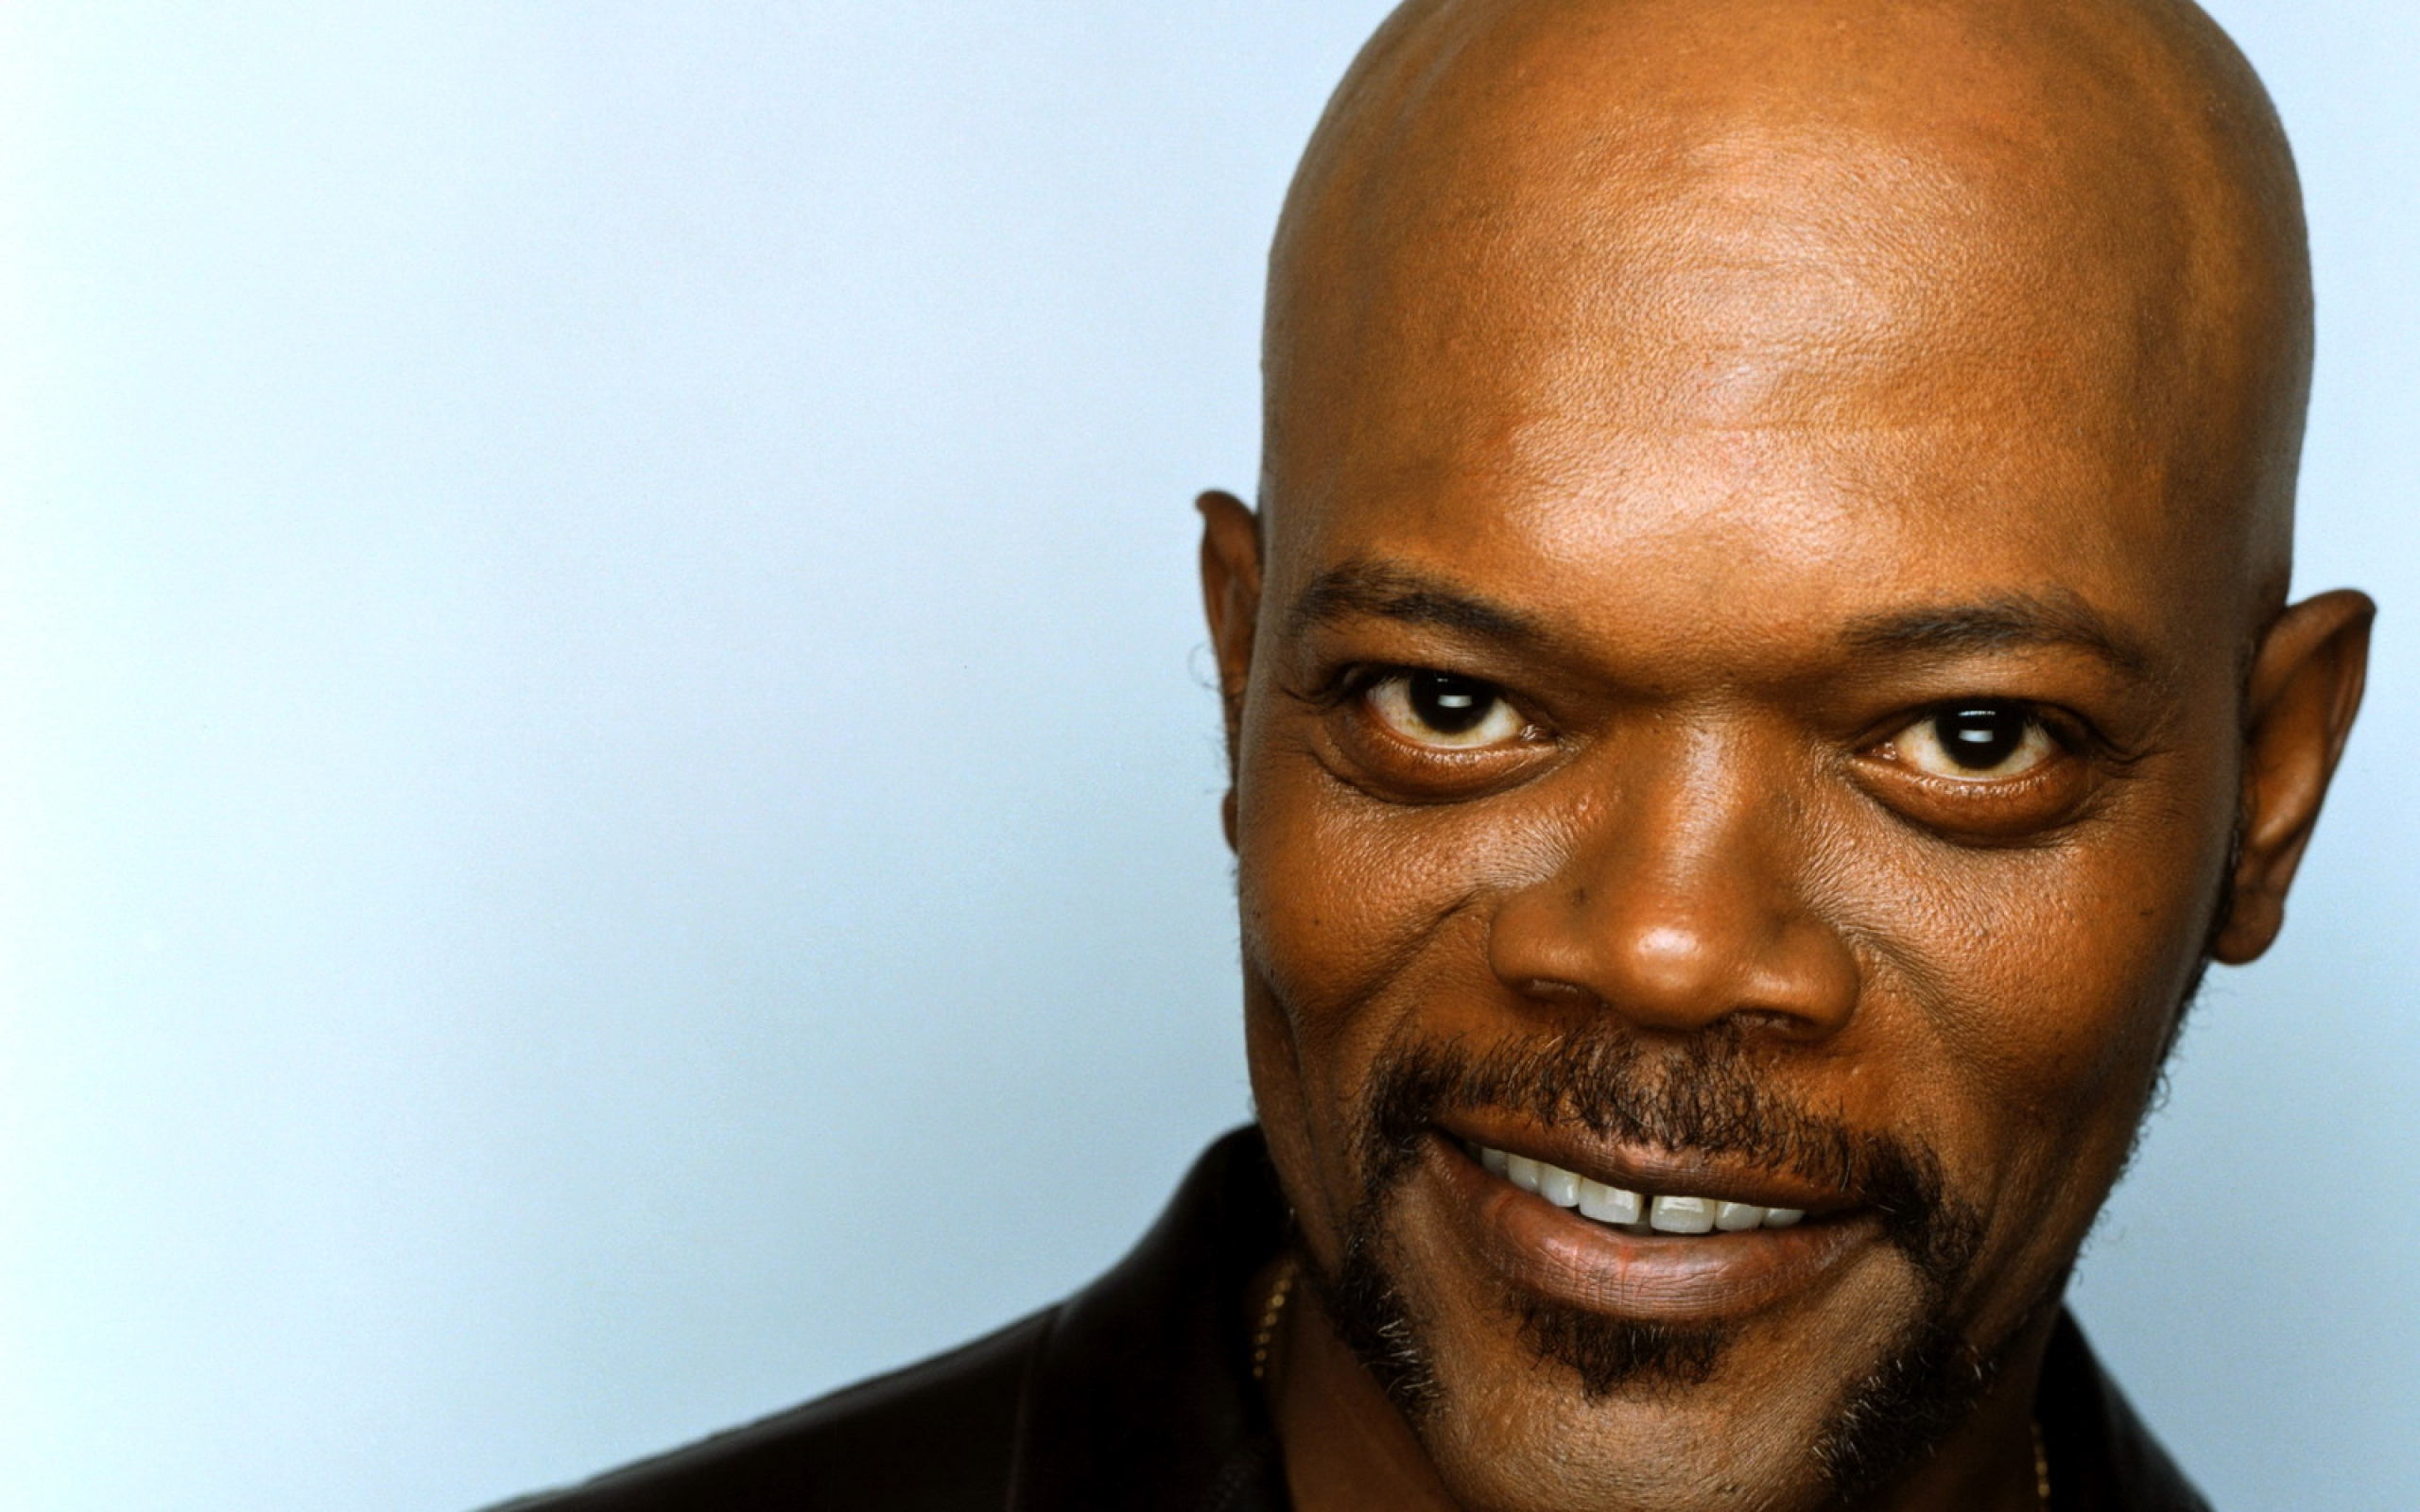 Samuel L Jackson Clipart Wallpaper 2560x1600 Samuel l jackson, Brown-eyed, Smiling